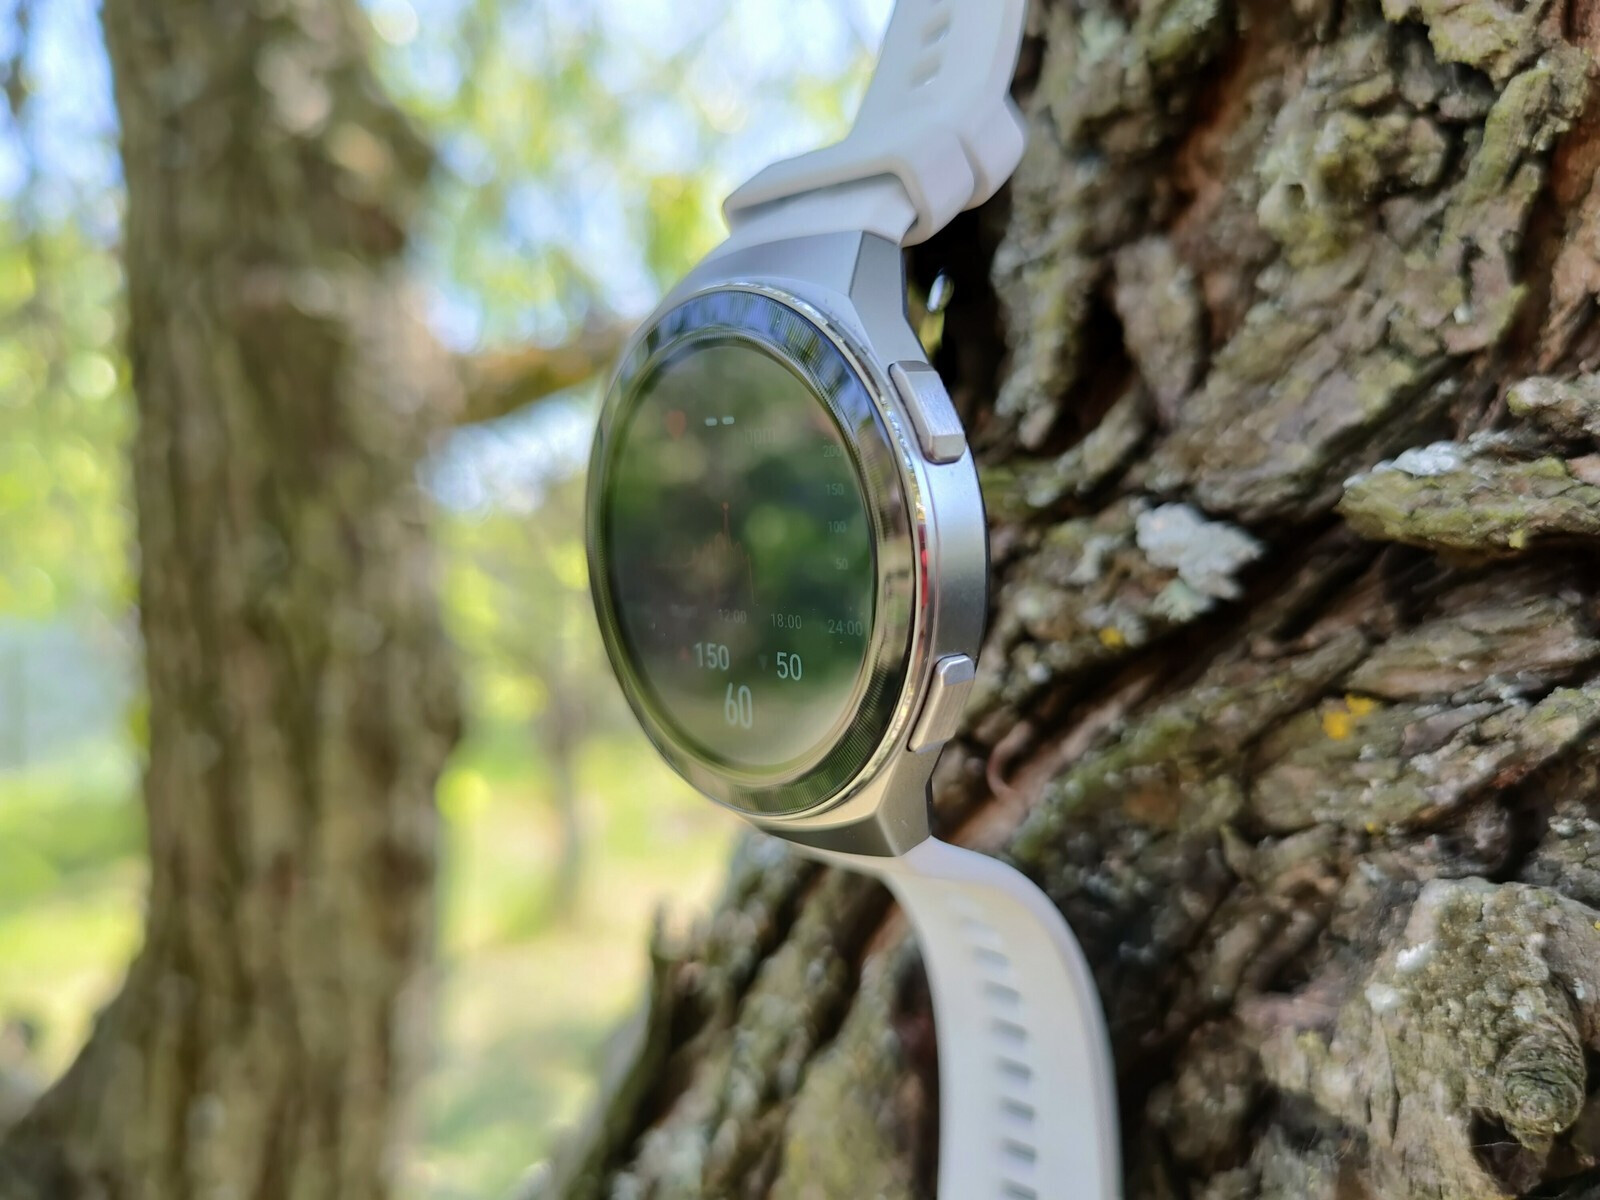 huawei-watch-gt-2e-review-3.jpg